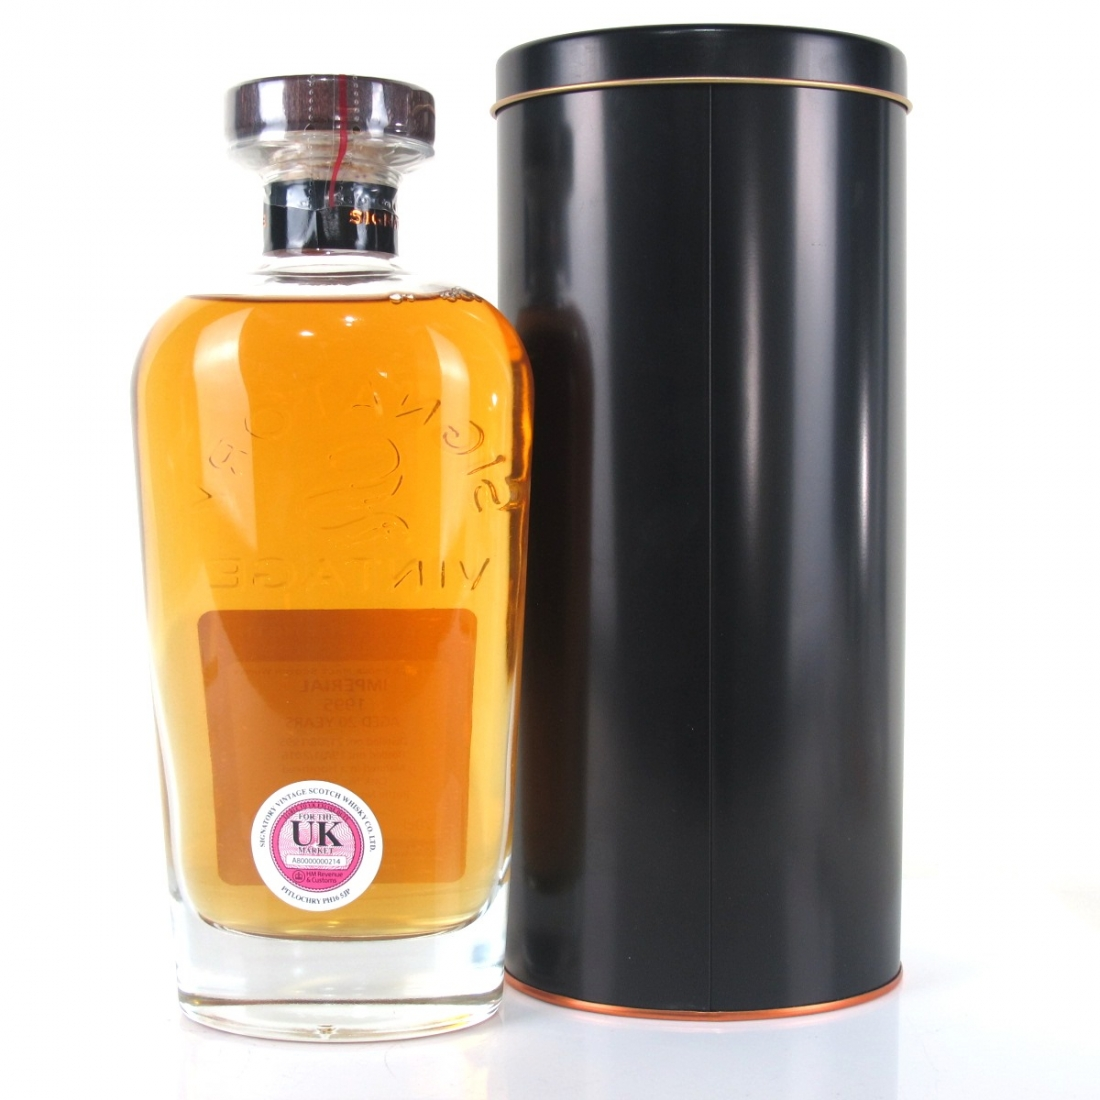 Imperial 1995 Signatory Vintage 20 Year Old Cask Strength